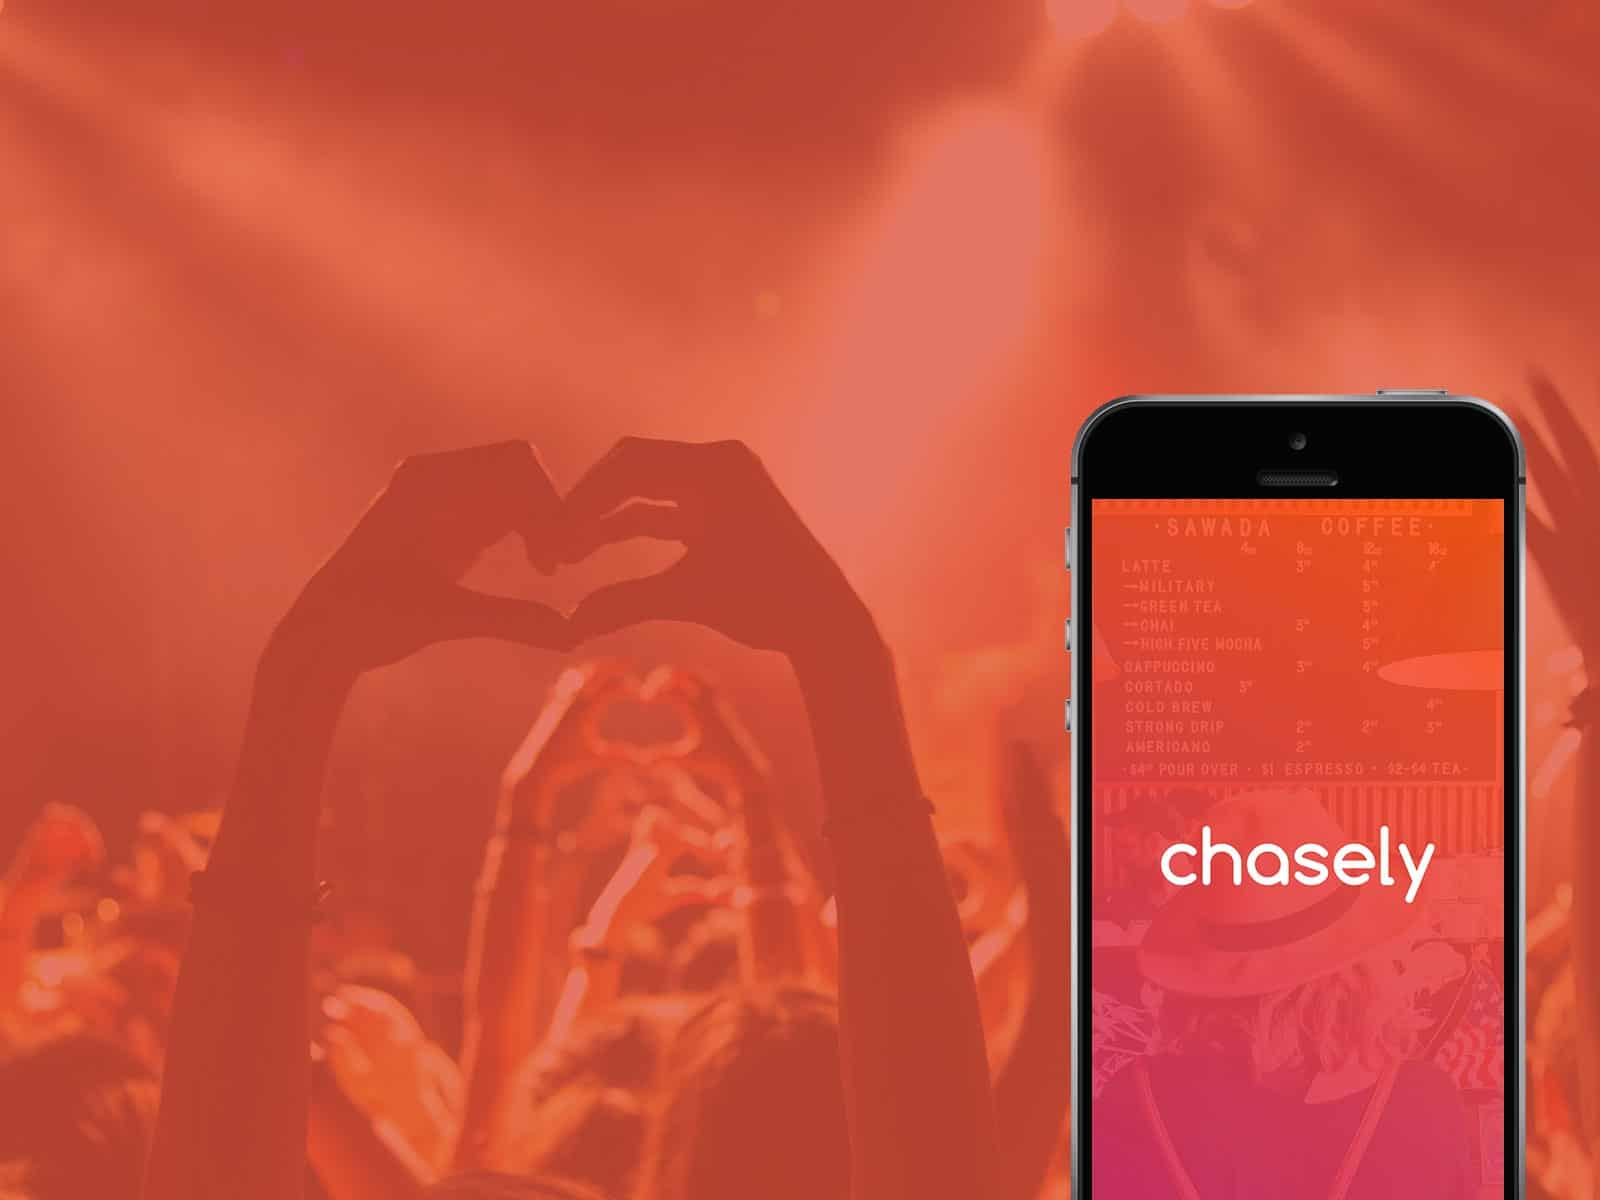 chasely 2 teroro agency - Chasely App